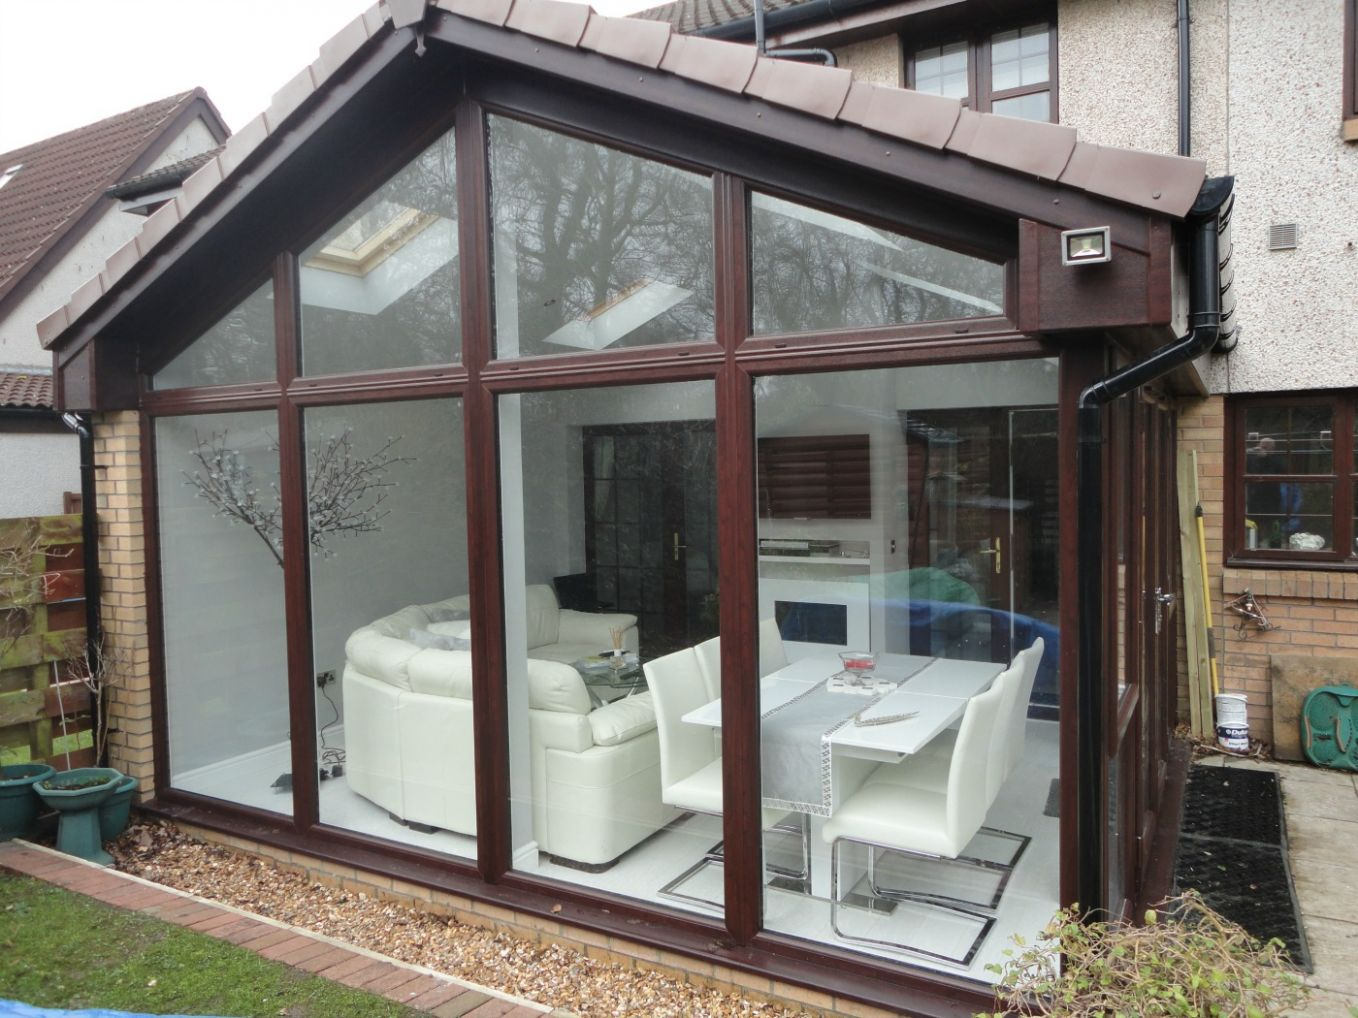 Bespoke Sunrooms in Scotland | CSJ - Central Scotland Joinery - sunroom ideas uk